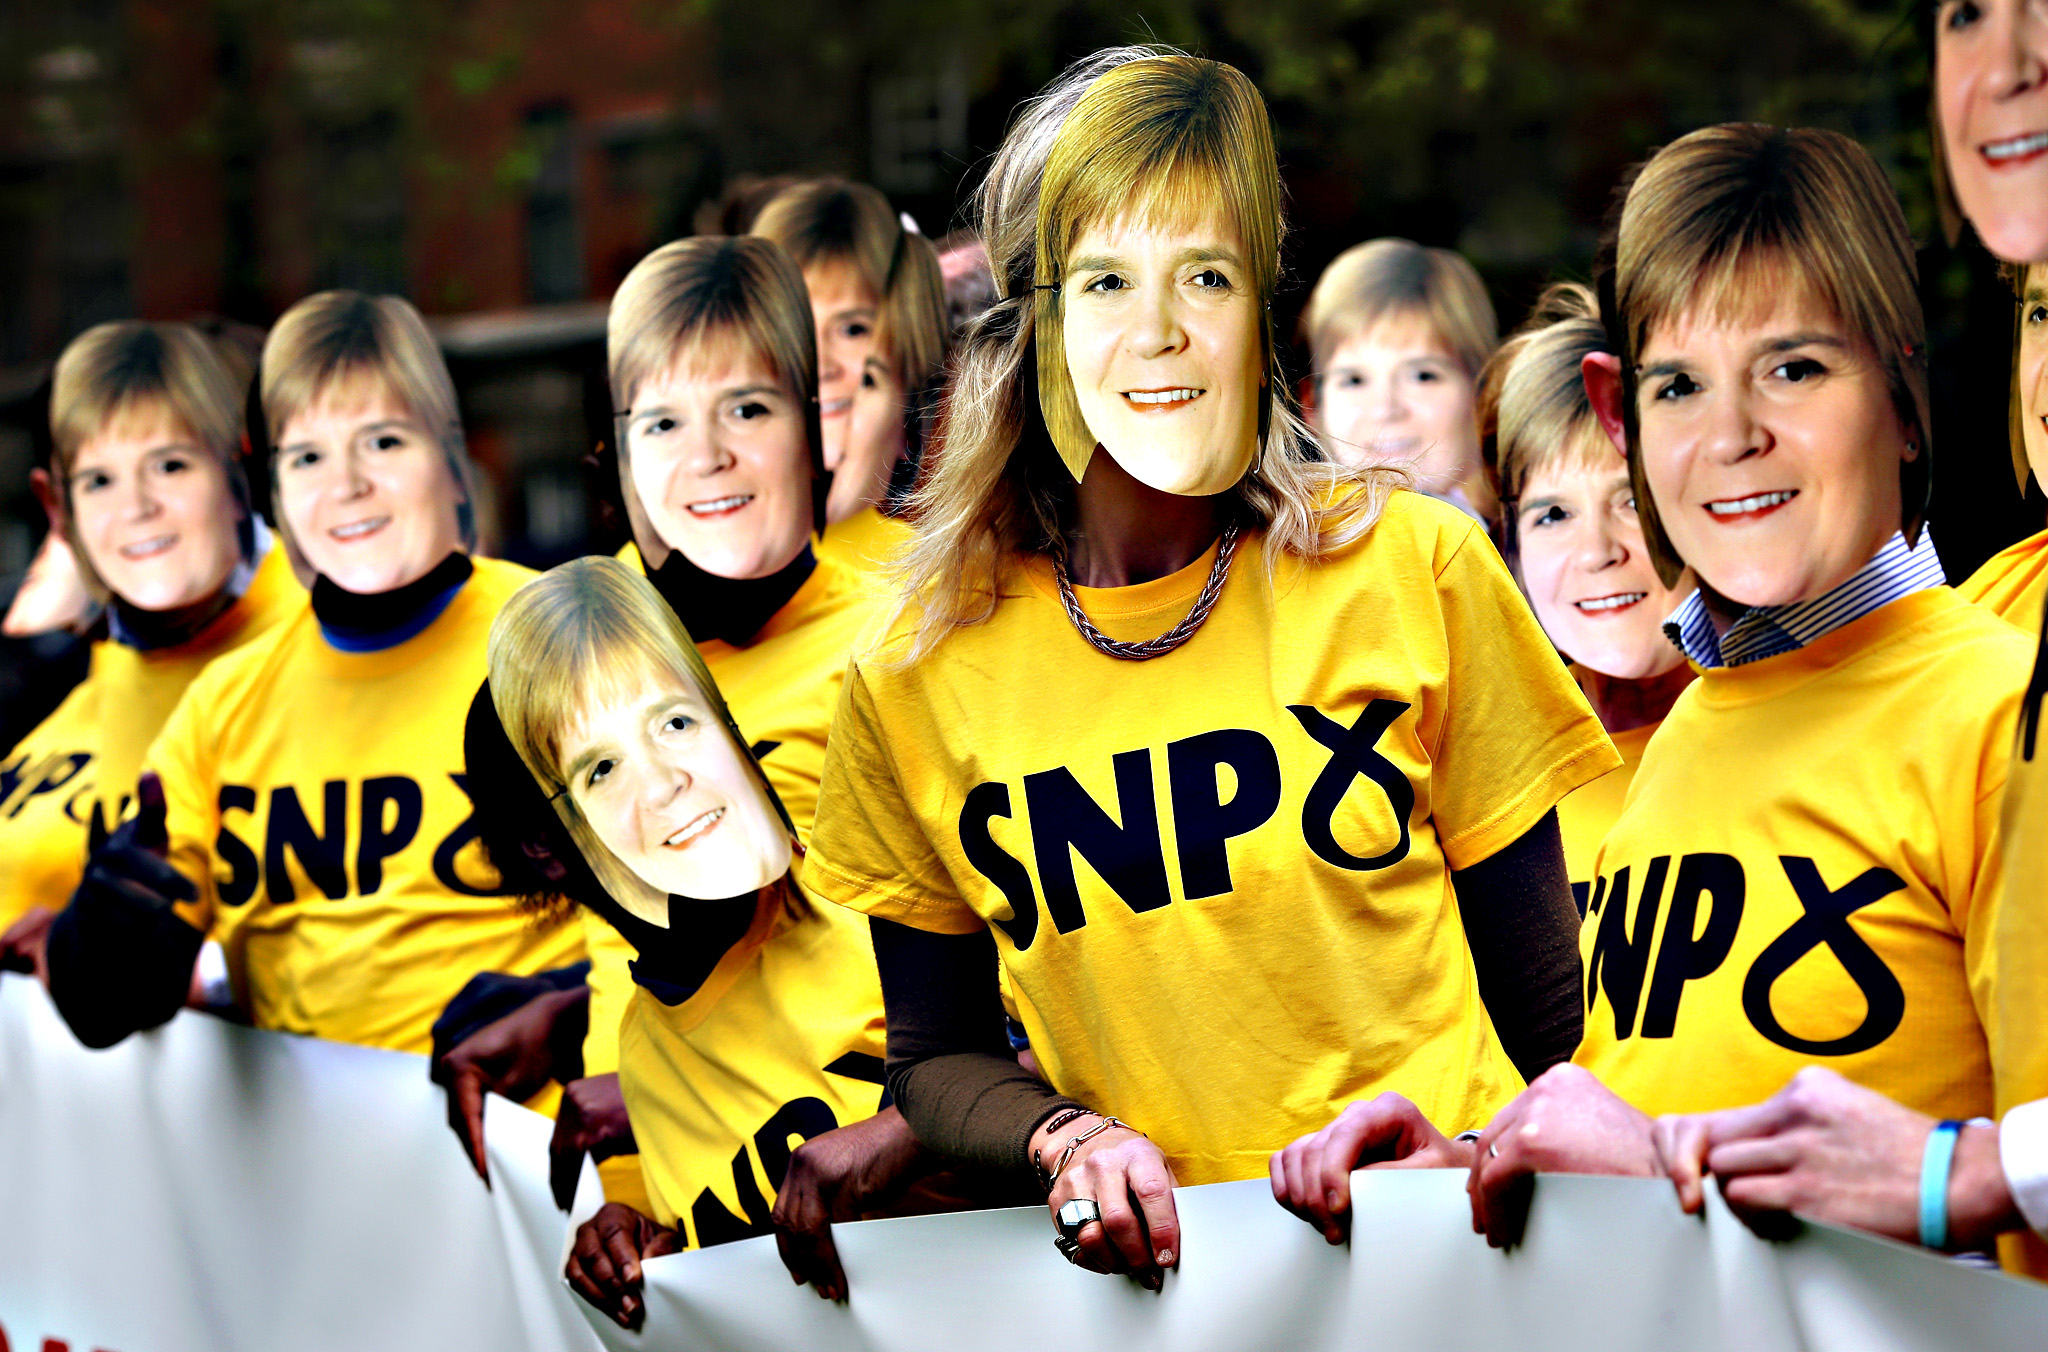 Conservative Party supporters wear Nicola Sturgeon masks during a photocall in Victoria Tower Gardens on Friday in London, England. The stunt was to warn of the risk of any possible coalition between the Labour Party and the SNP